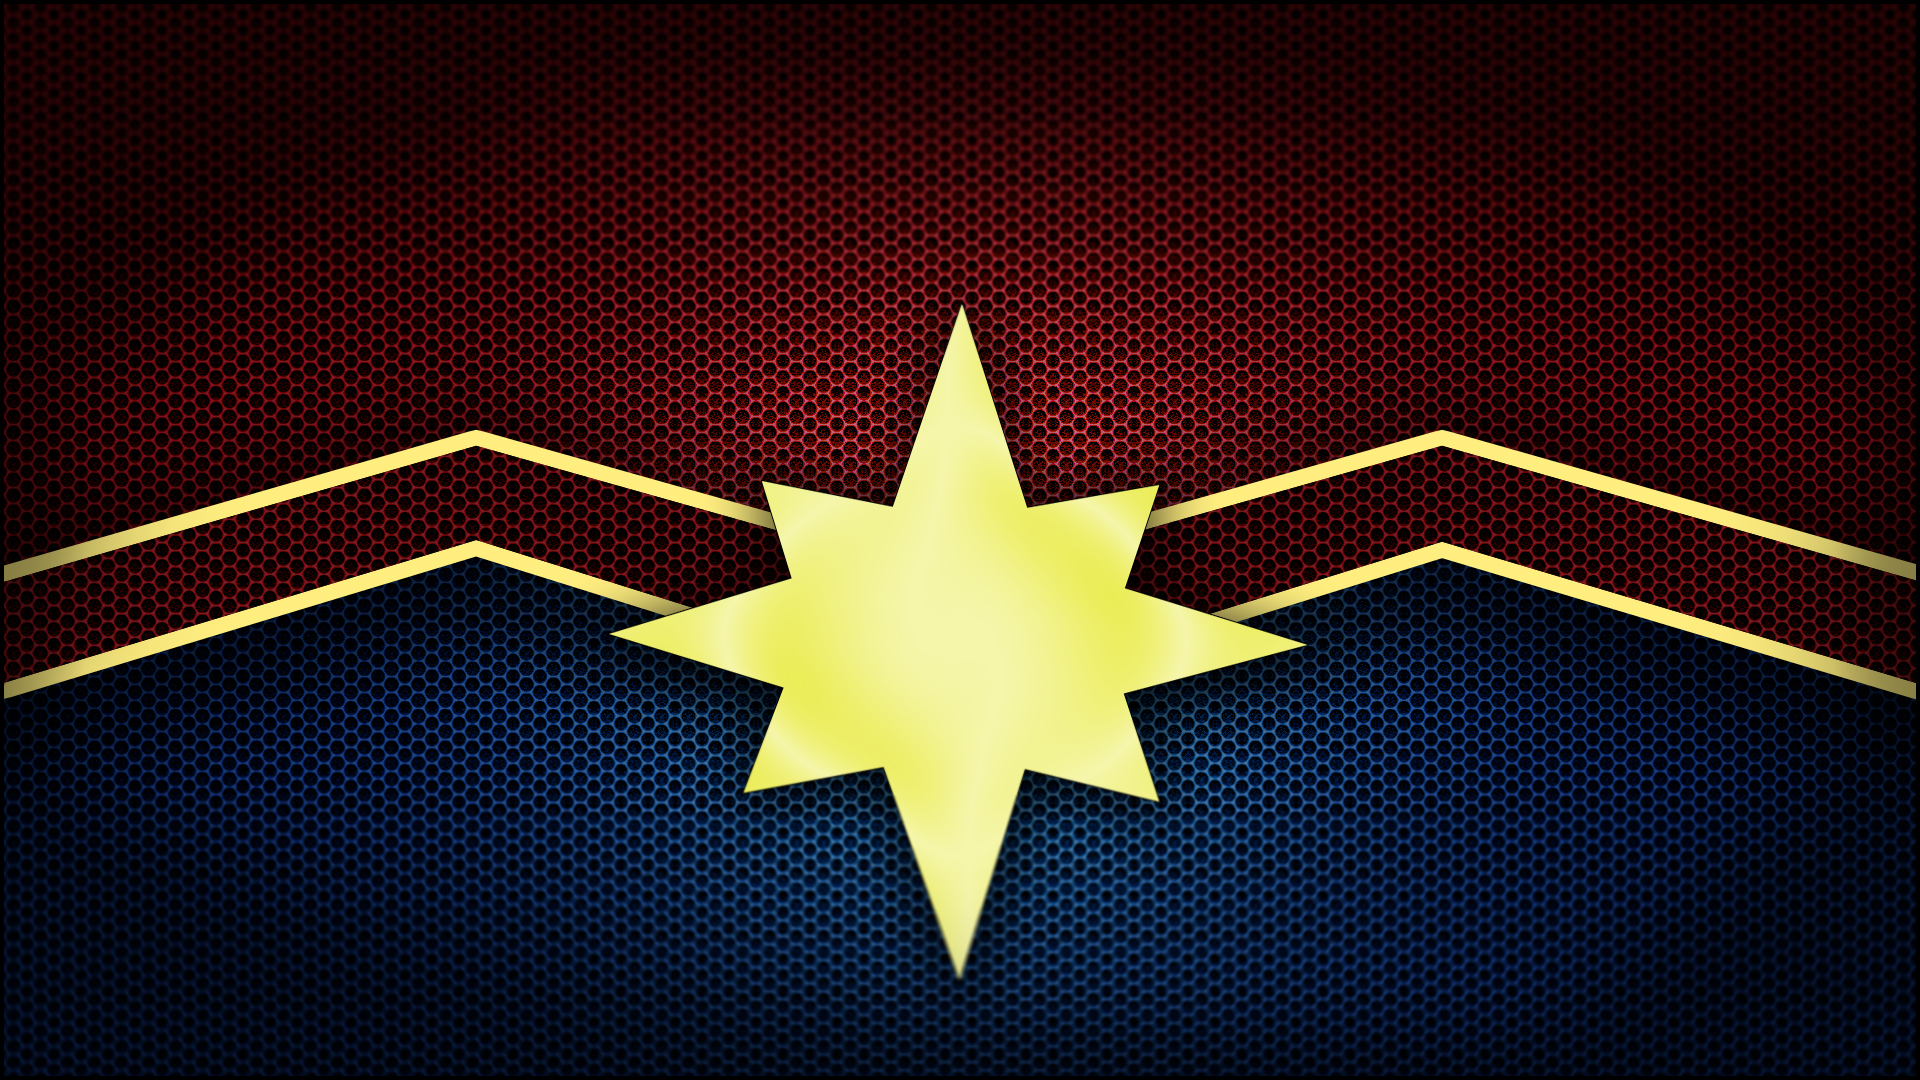 Captain Marvel Logo Hd Superheroes 4k Wallpapers Images